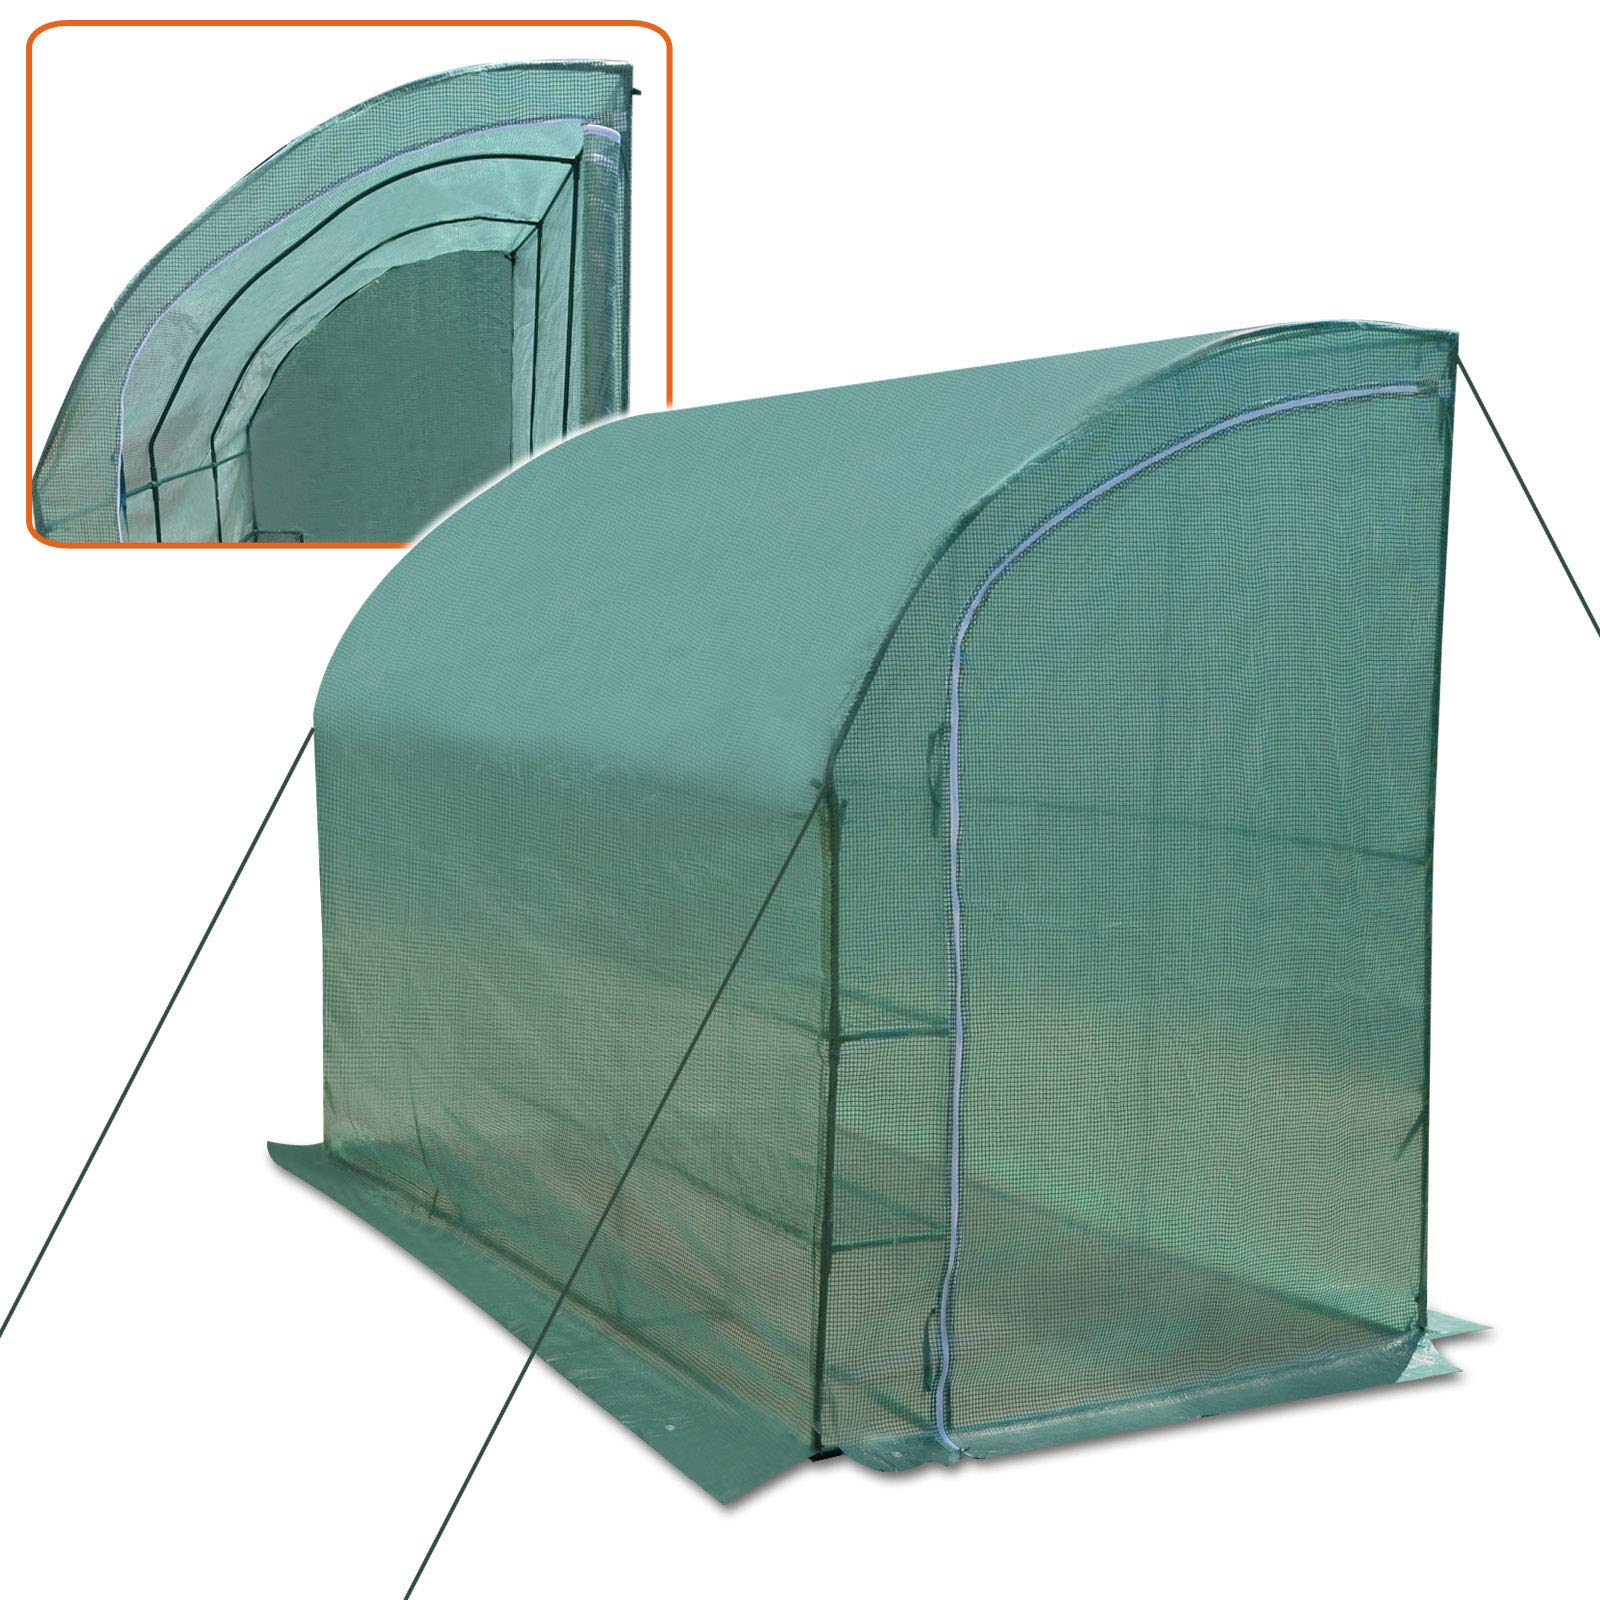 Strong Camel New Large Walk-in Wall Greenhouse 10x5x7'H w 3 Tiers/6 Shelves Gardening (Green) by Strong Camel (Image #2)